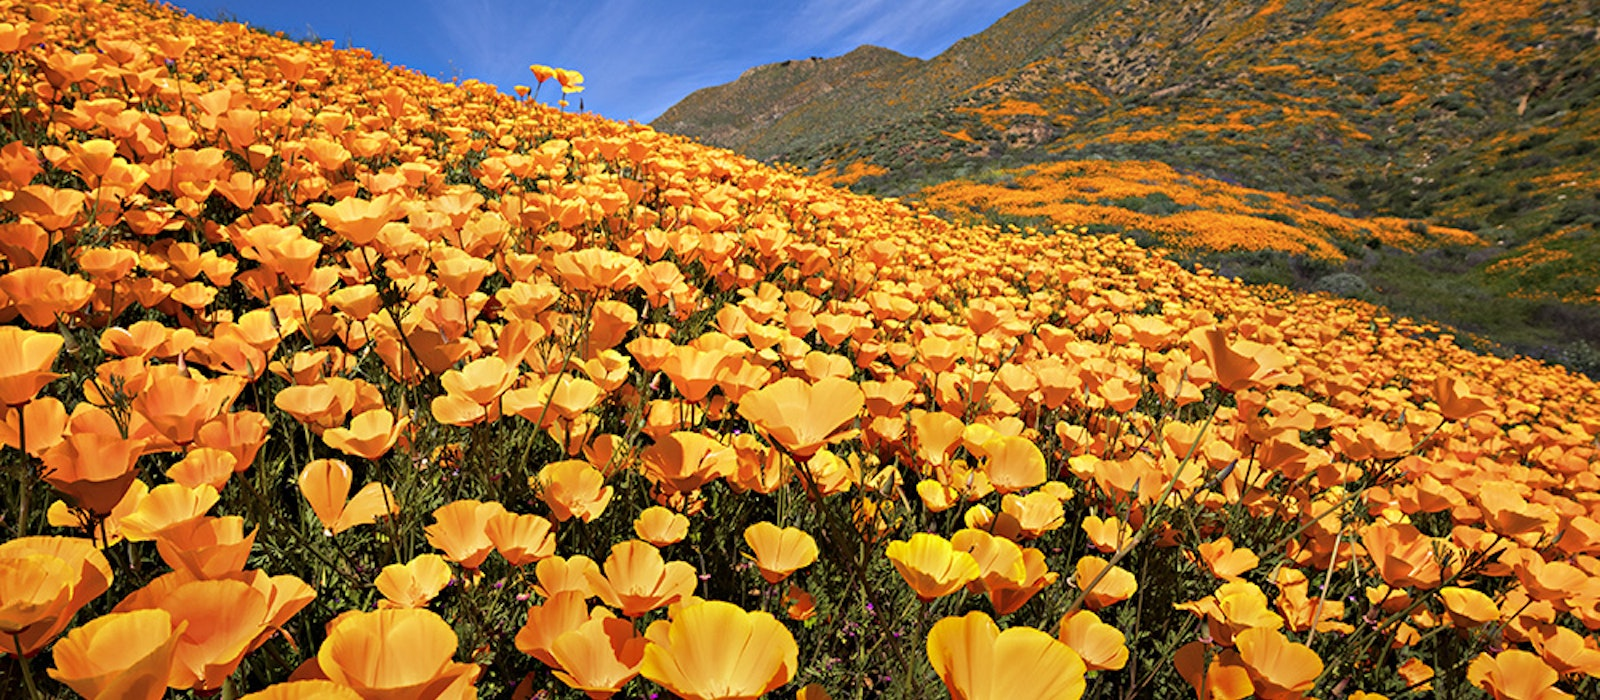 The California poppy is the most ubiquitous wildflower on the West Coast, but there's a lot more blooming in the Golden State this spring.